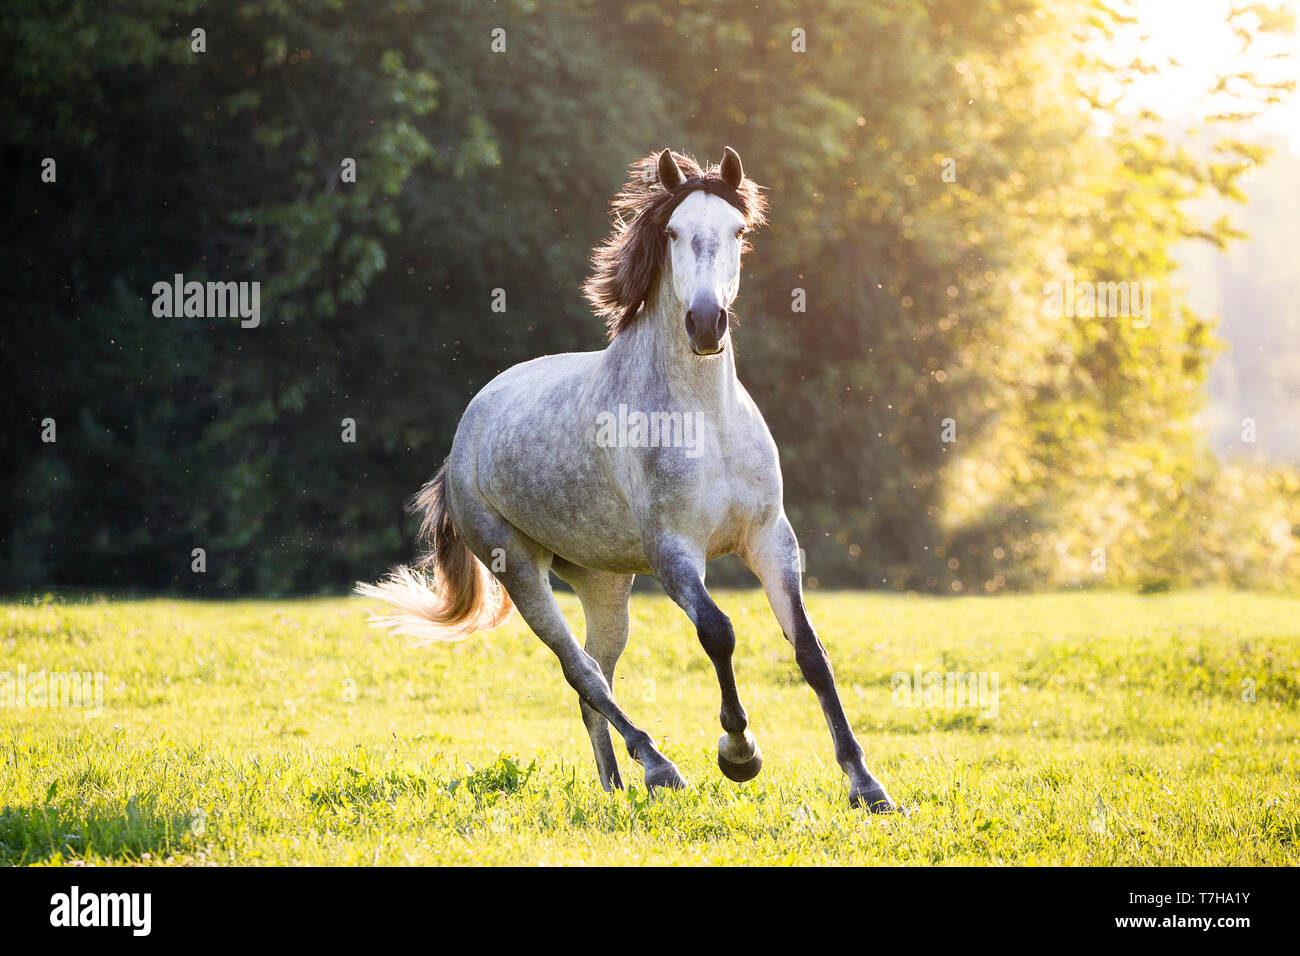 Lusitano. Juvenile gray mare galloping on a pasture. Germany - Stock Image